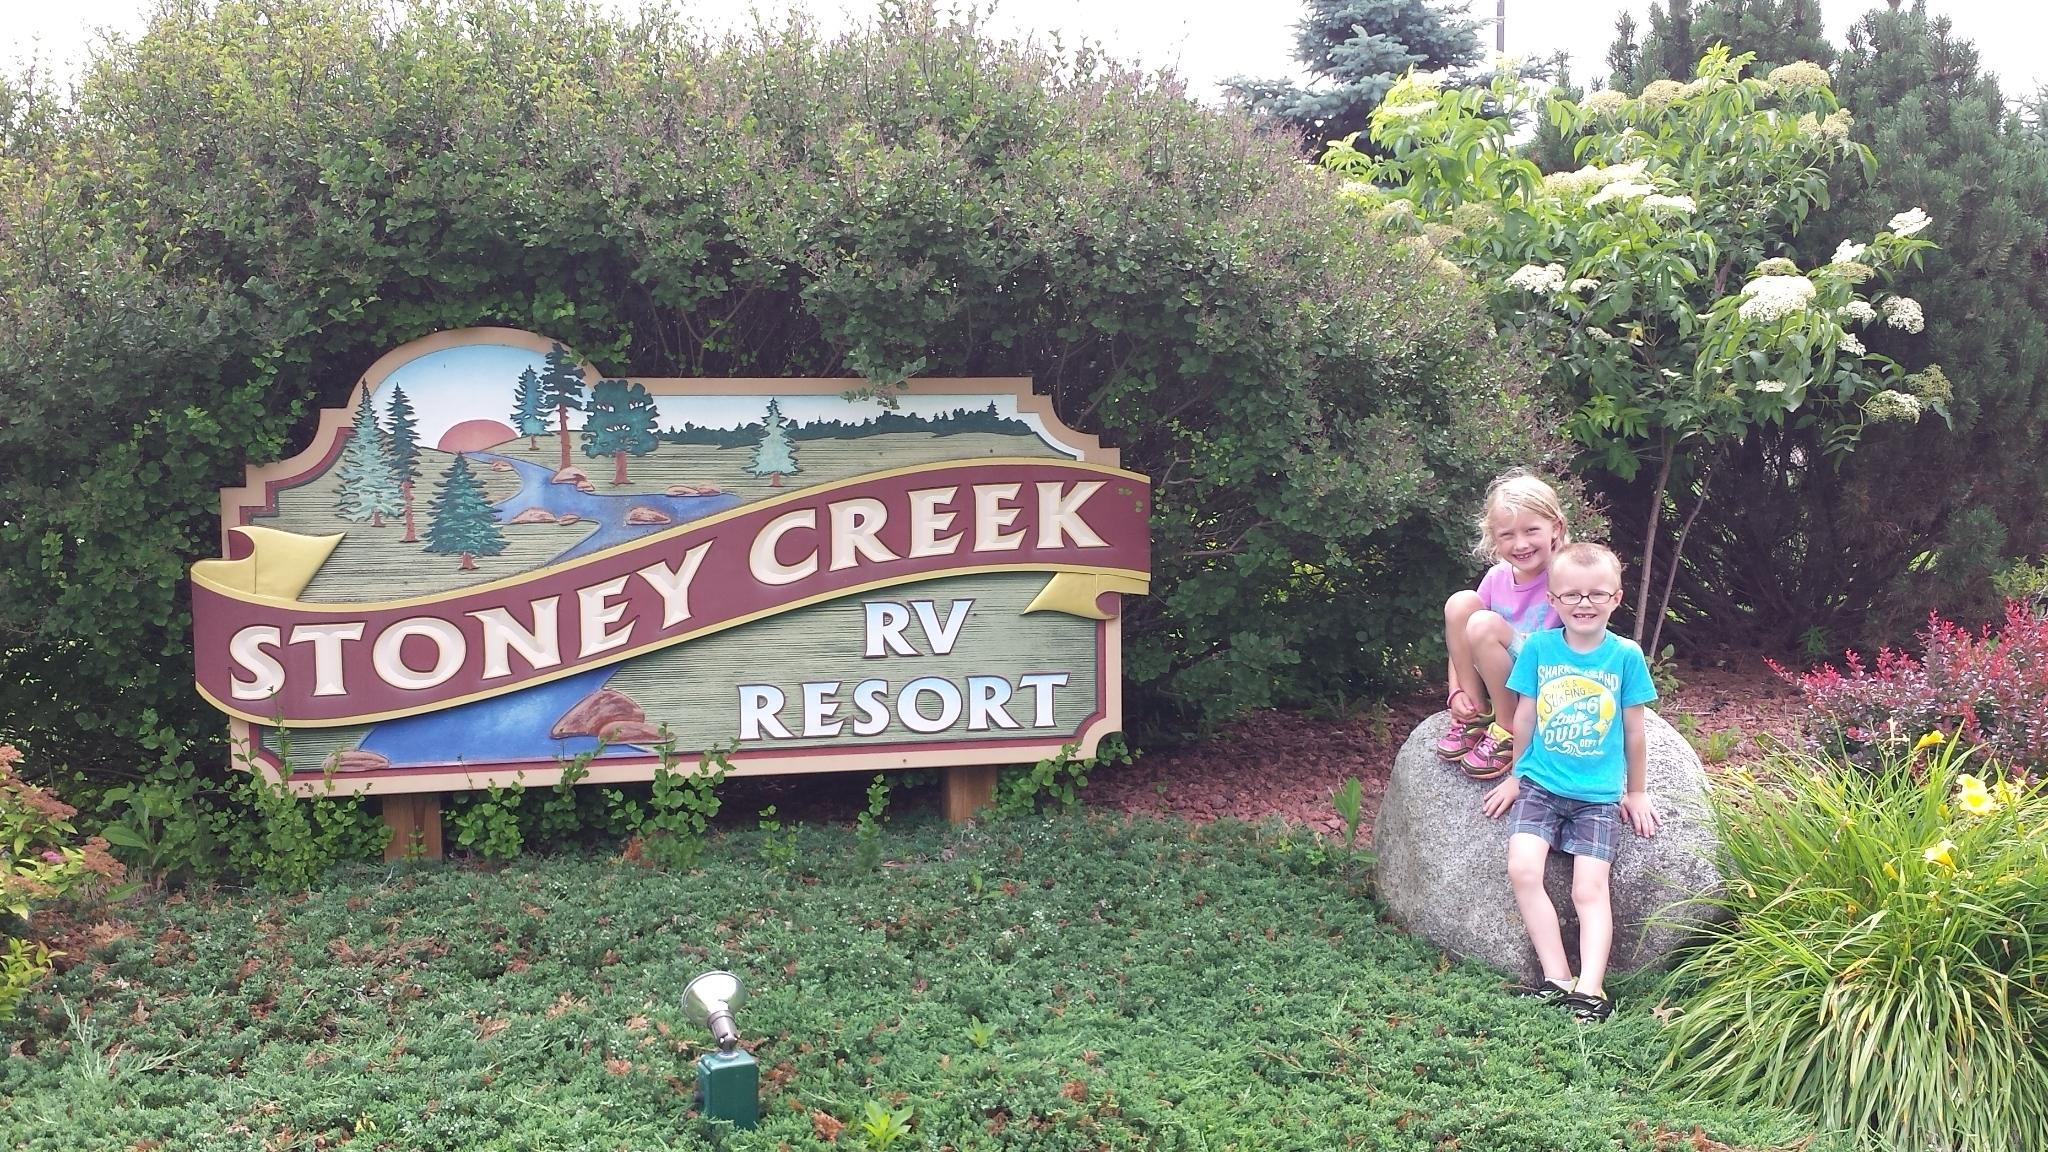 Stoney Creek RV Resort & Campground